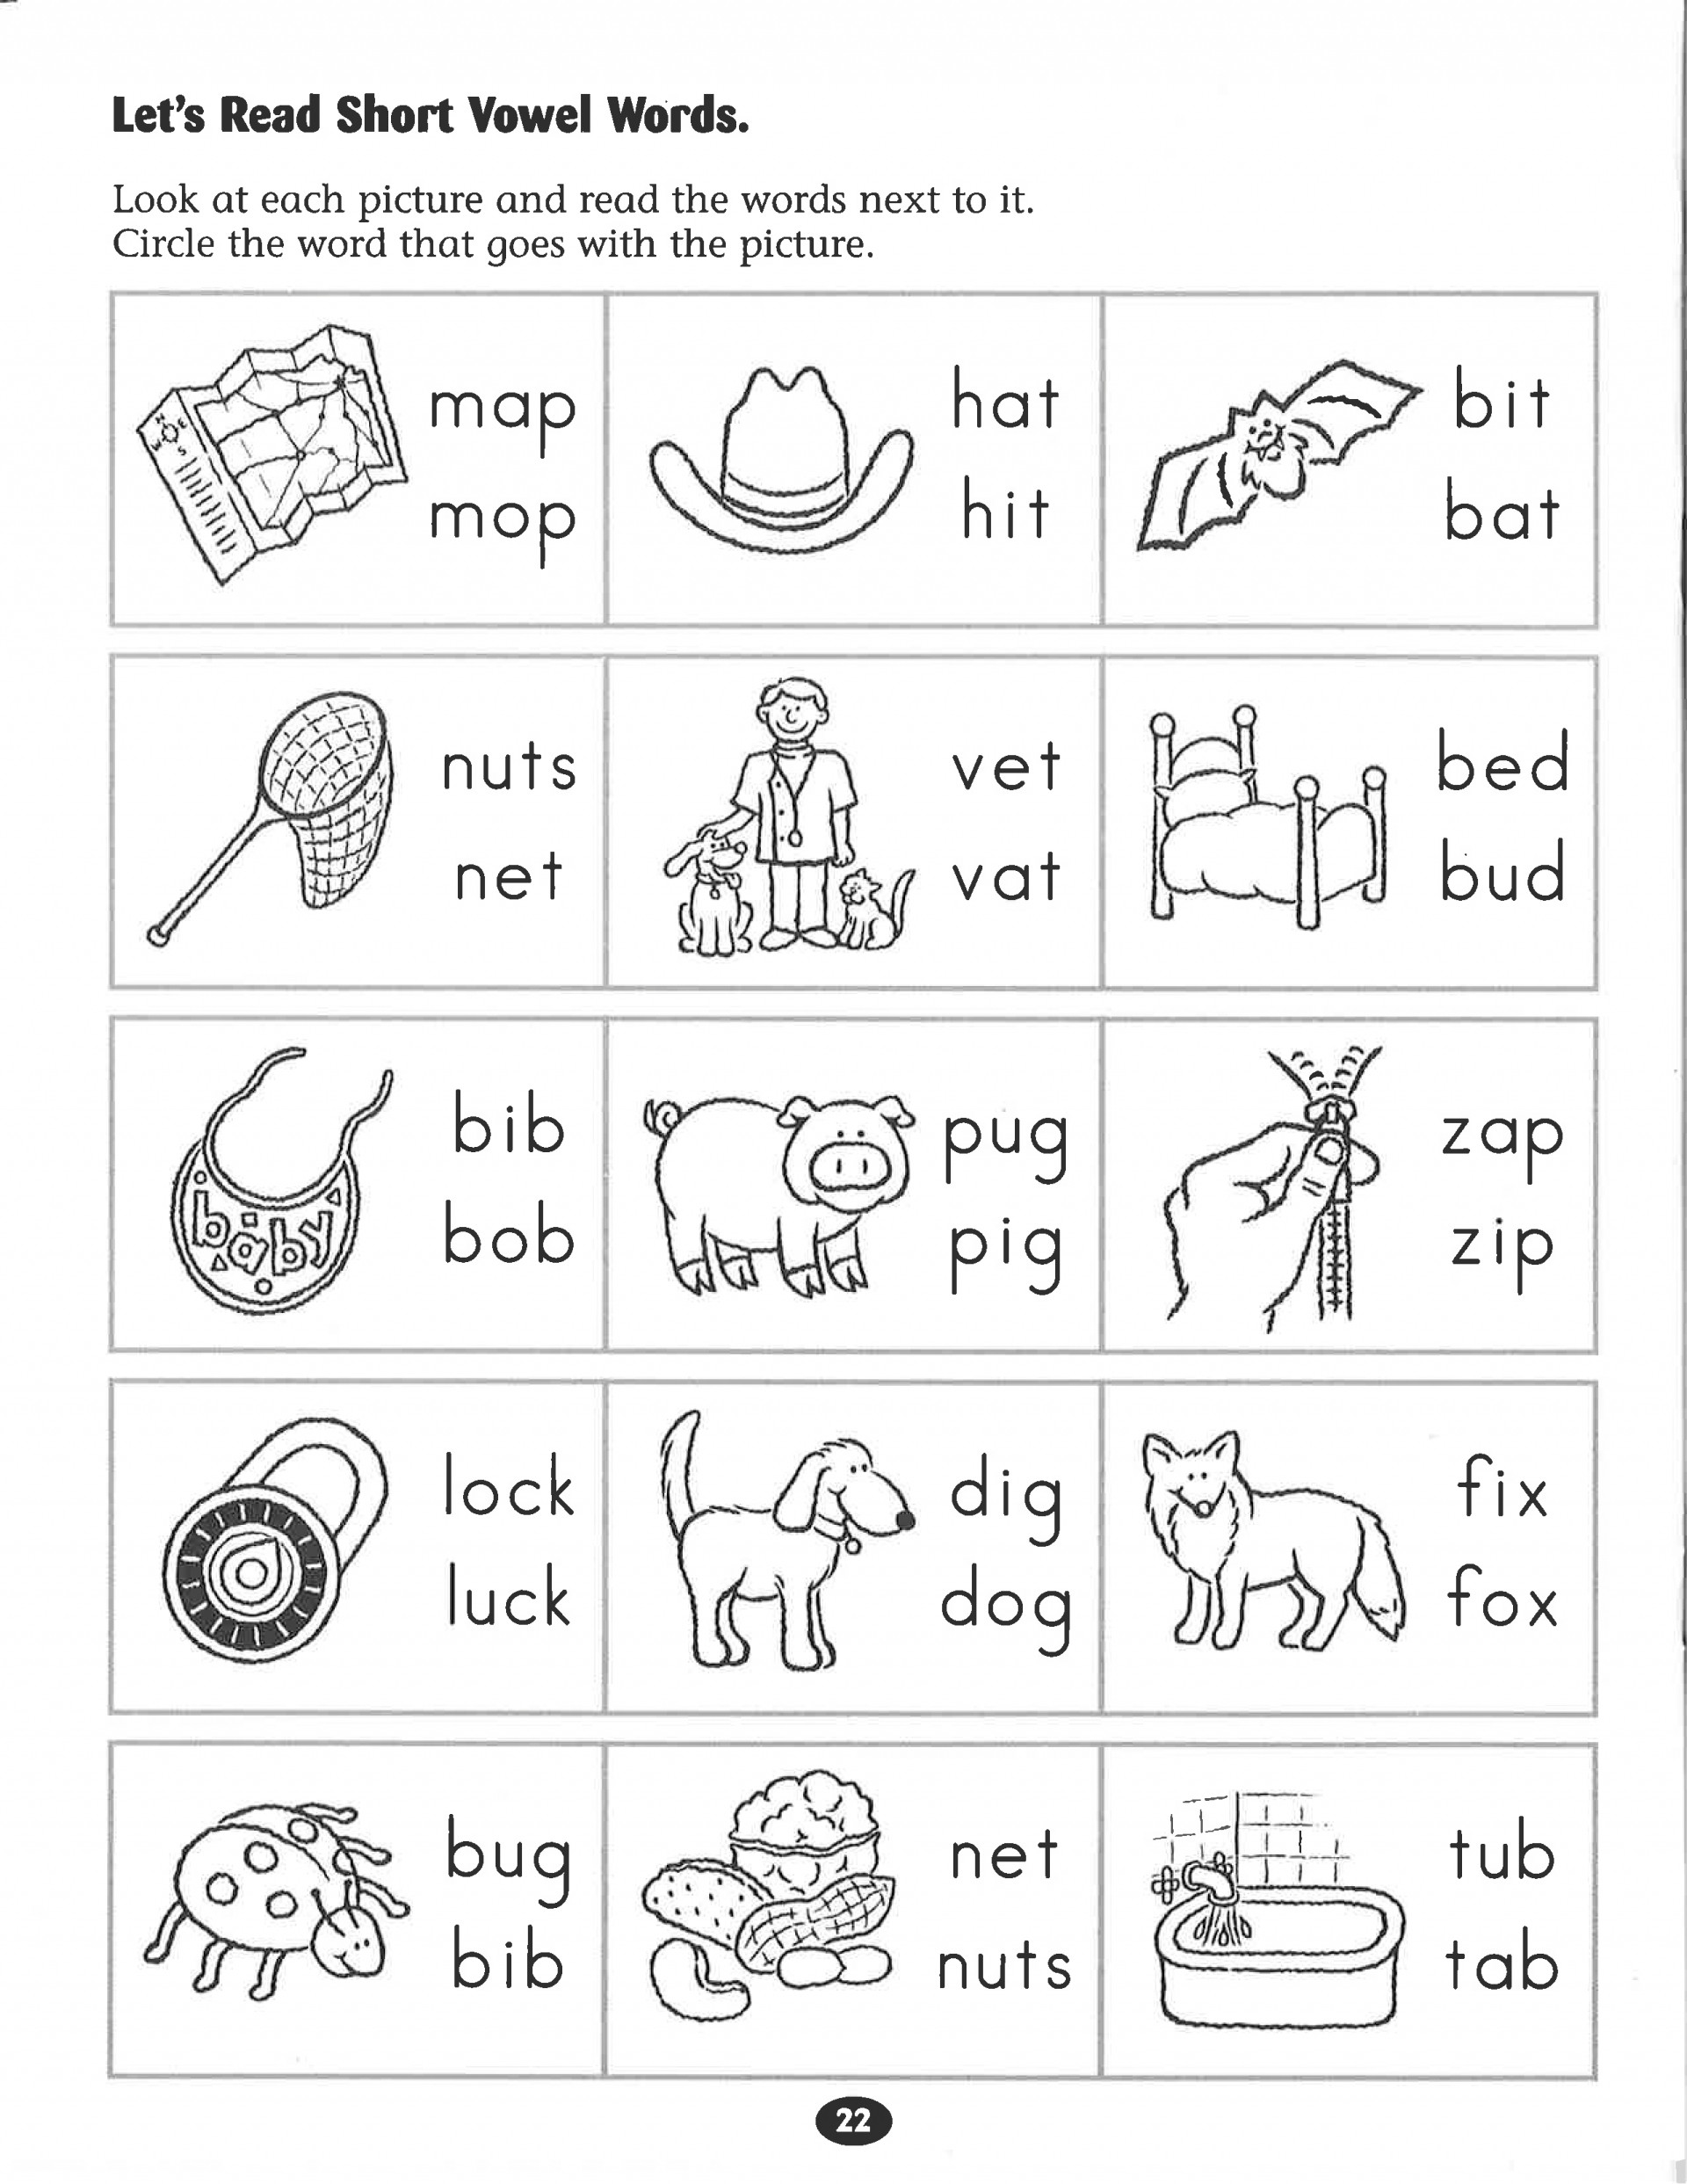 Short Vowel Worksheets 1st Grade Short Vowel A Worksheets for First Grade لم يسبق له Ù…Ø ÙŠÙ""